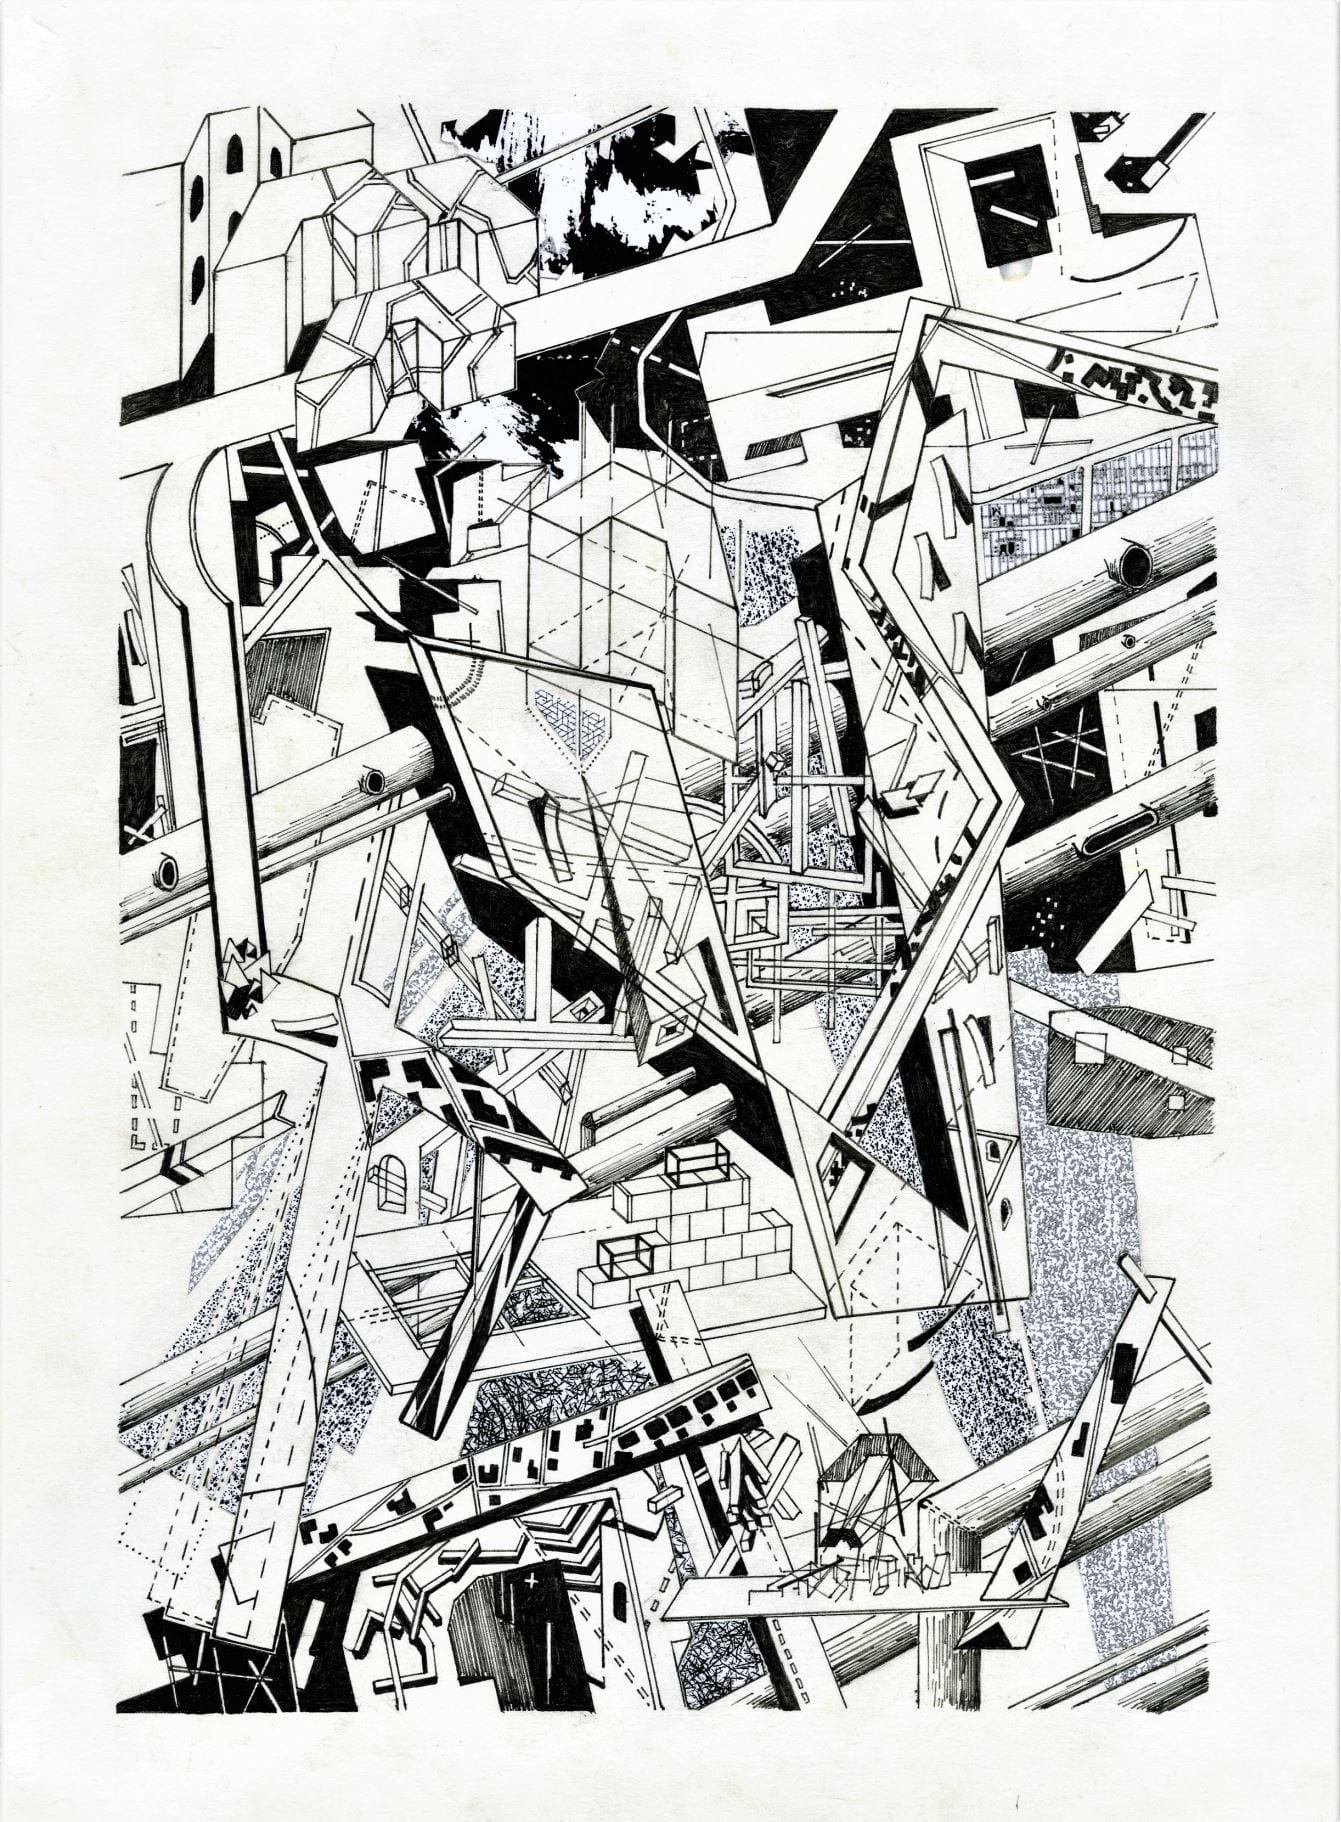 A black and white illustration, with maps, buildings and pipes, all colliding into each other.